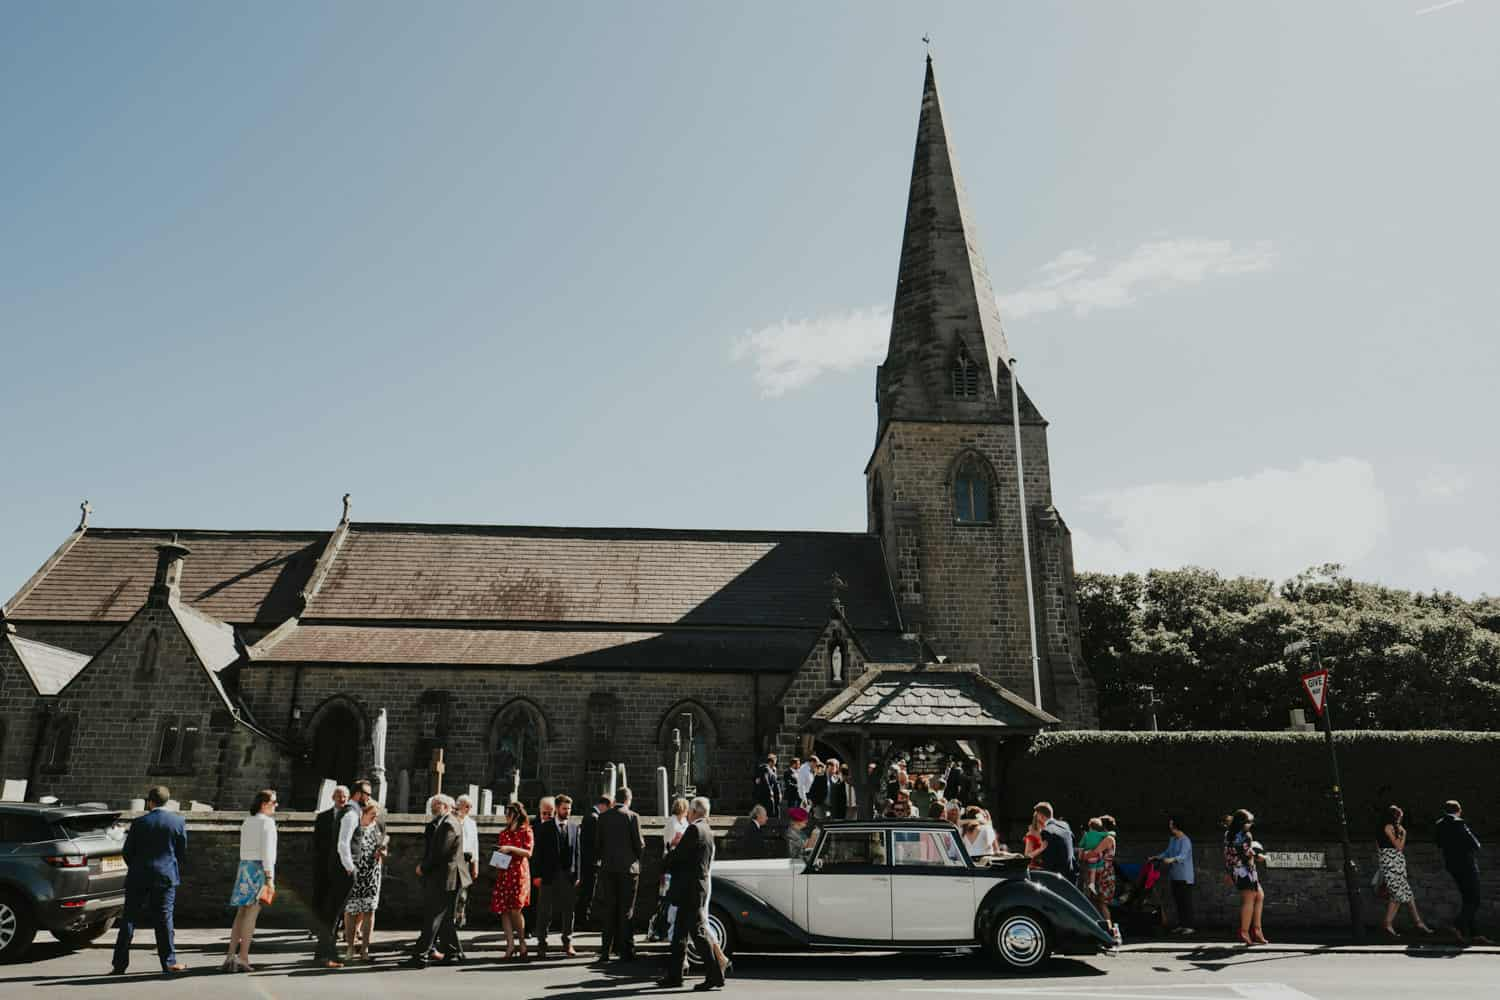 The guests outside the church